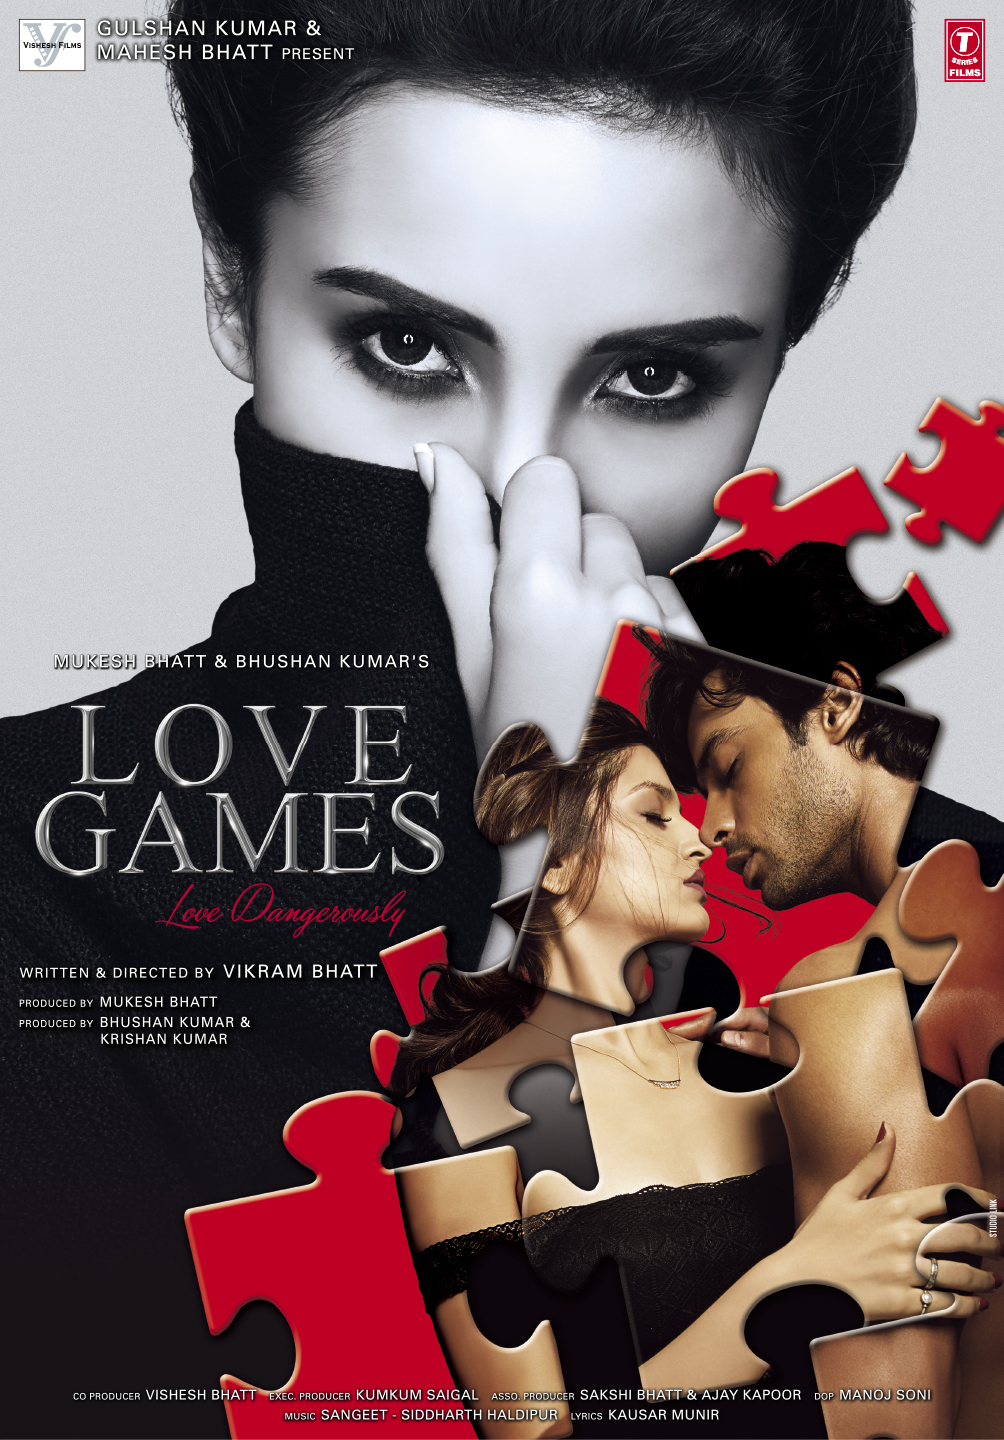 Image result for Love Games - Love Dangerously (2016) movie poster